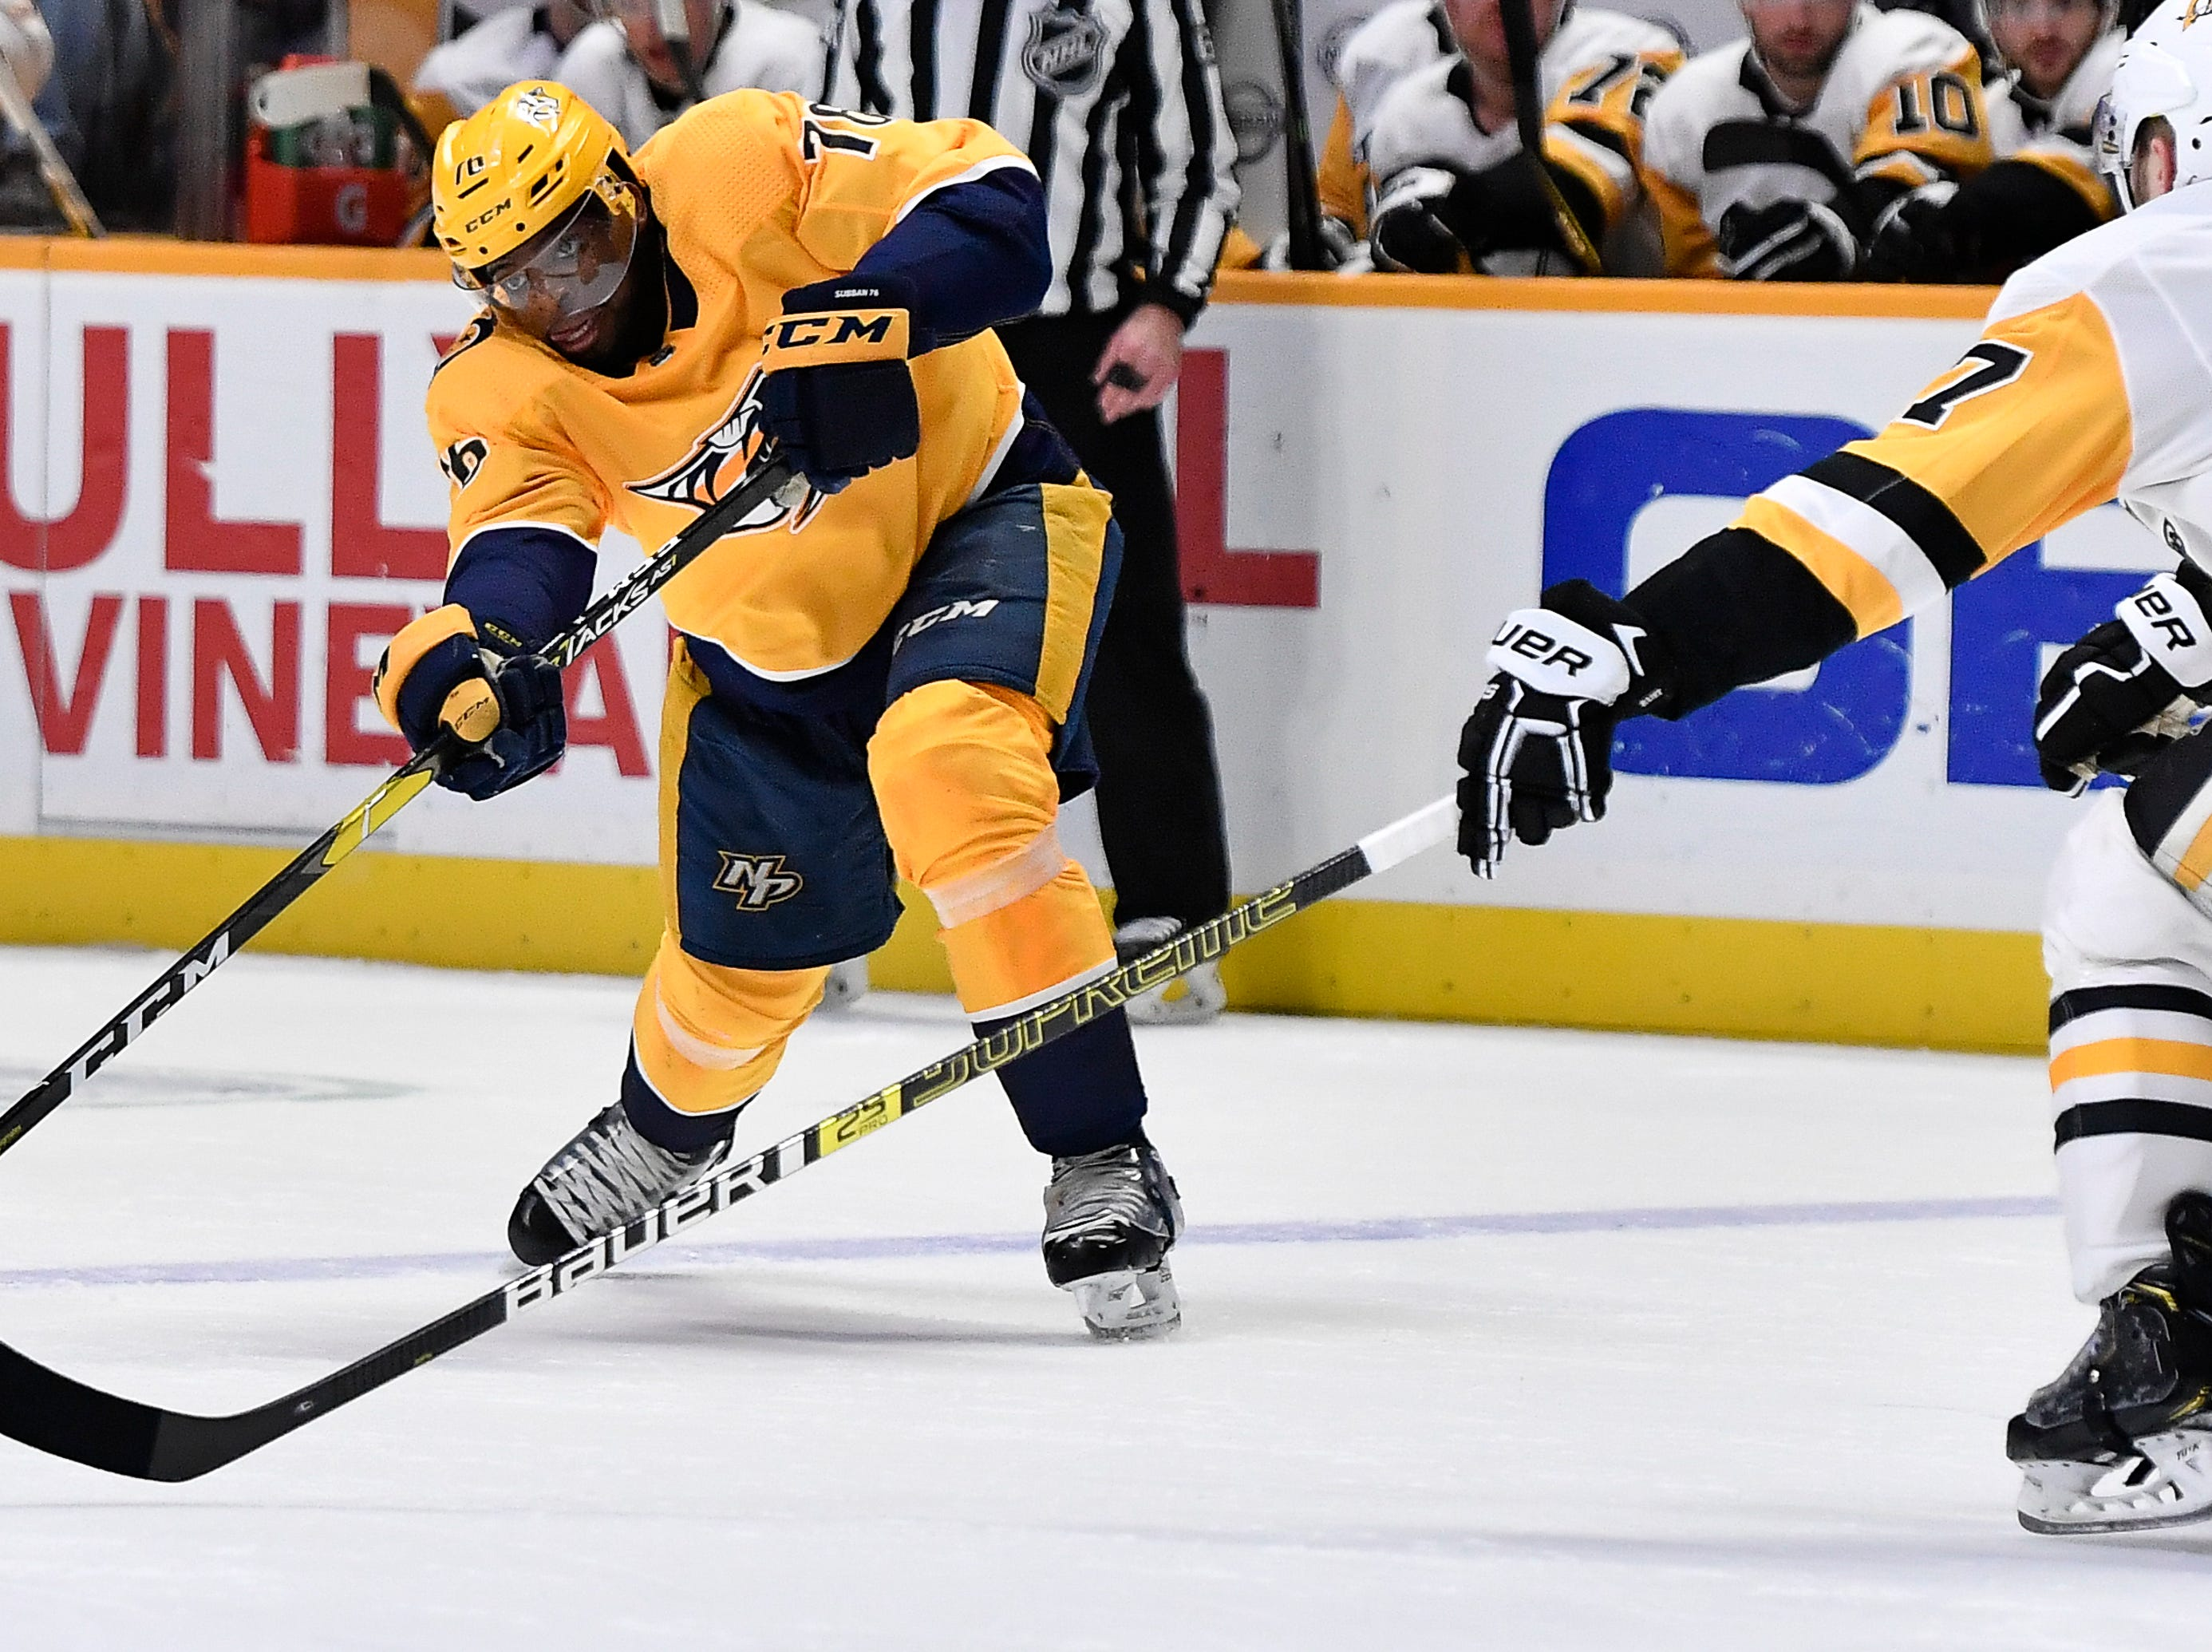 Predators defenseman P.K. Subban (76) passes the puck past Penguins right wing Bryan Rust (17) during the third period at Bridgestone Arena Thursday, March 21, 2019 in Nashville, Tenn.